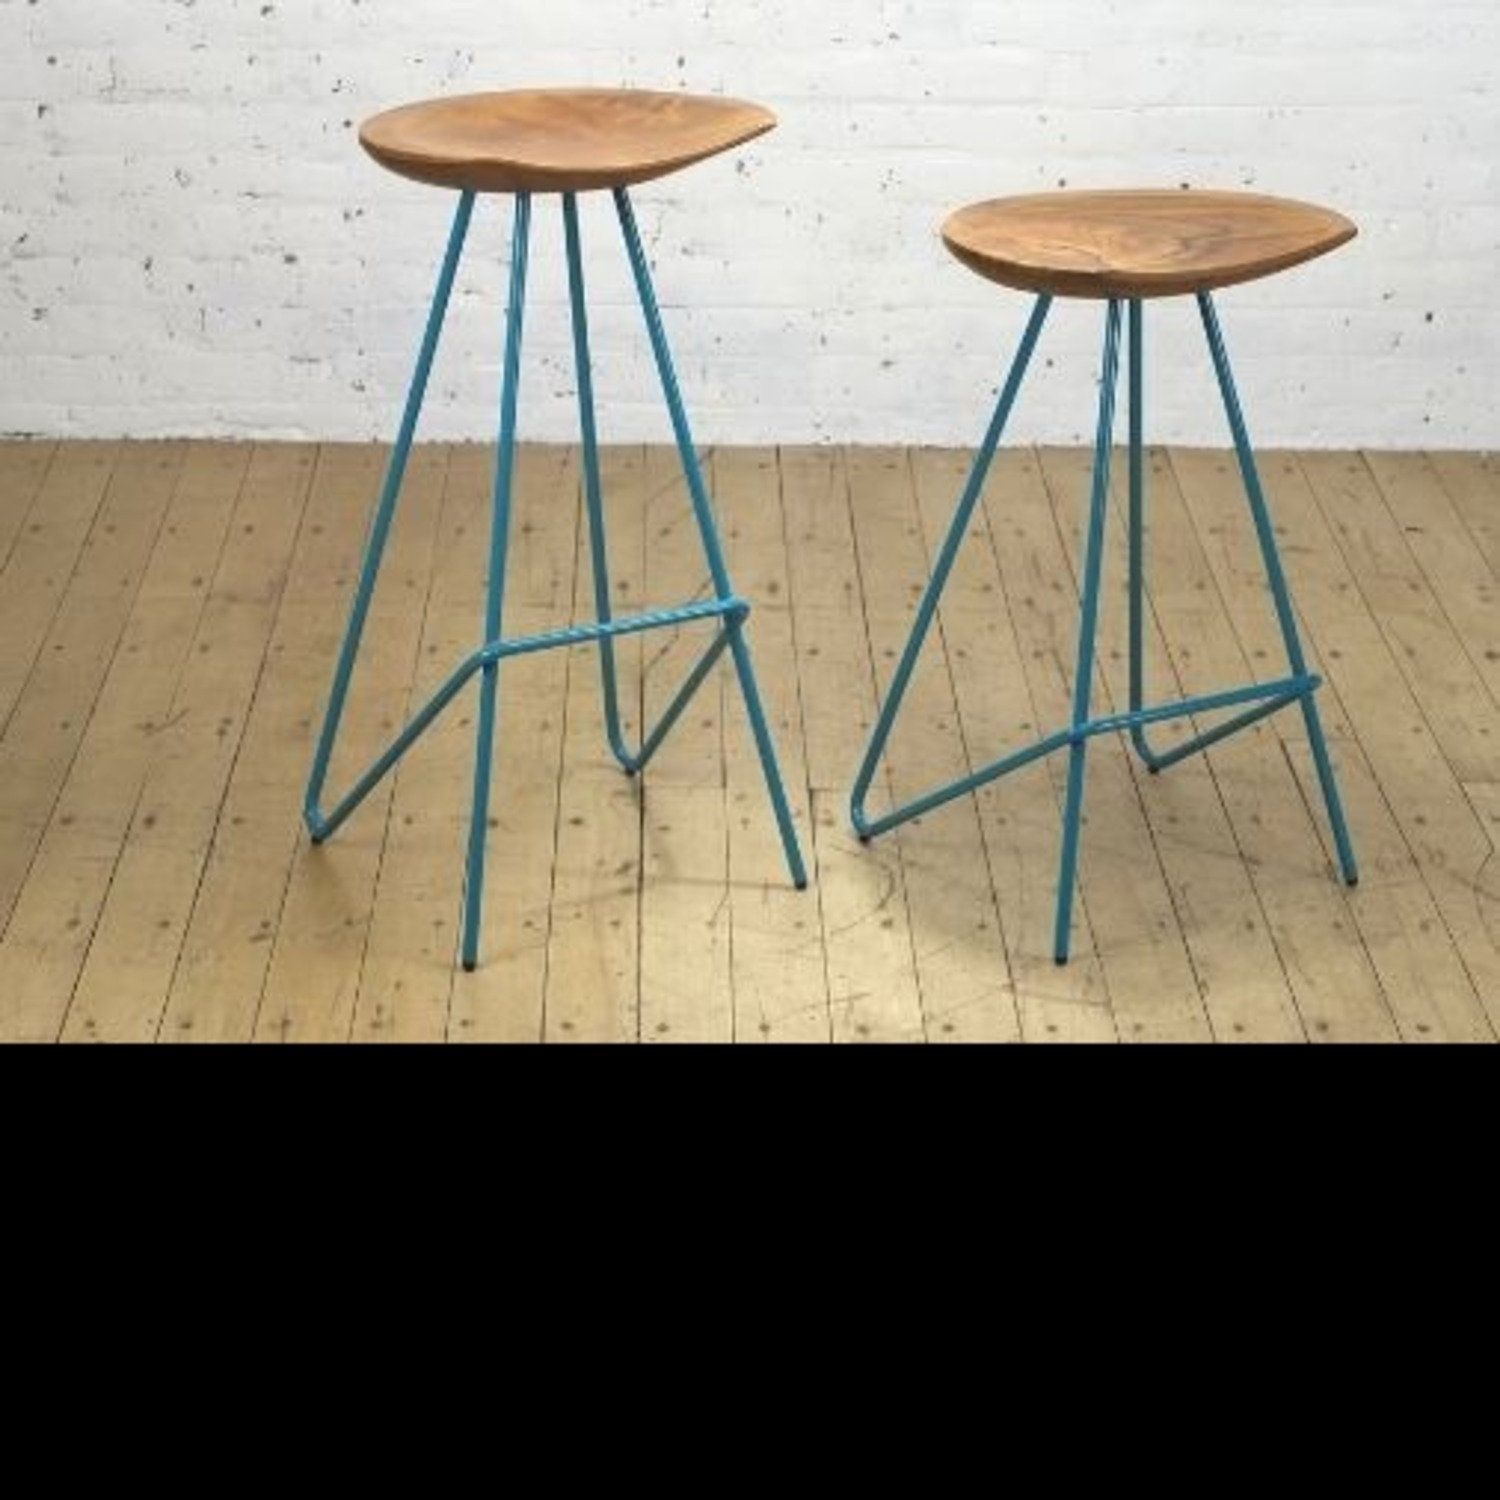 From The Source Perch Counter Stools - Set of 2 - image-6